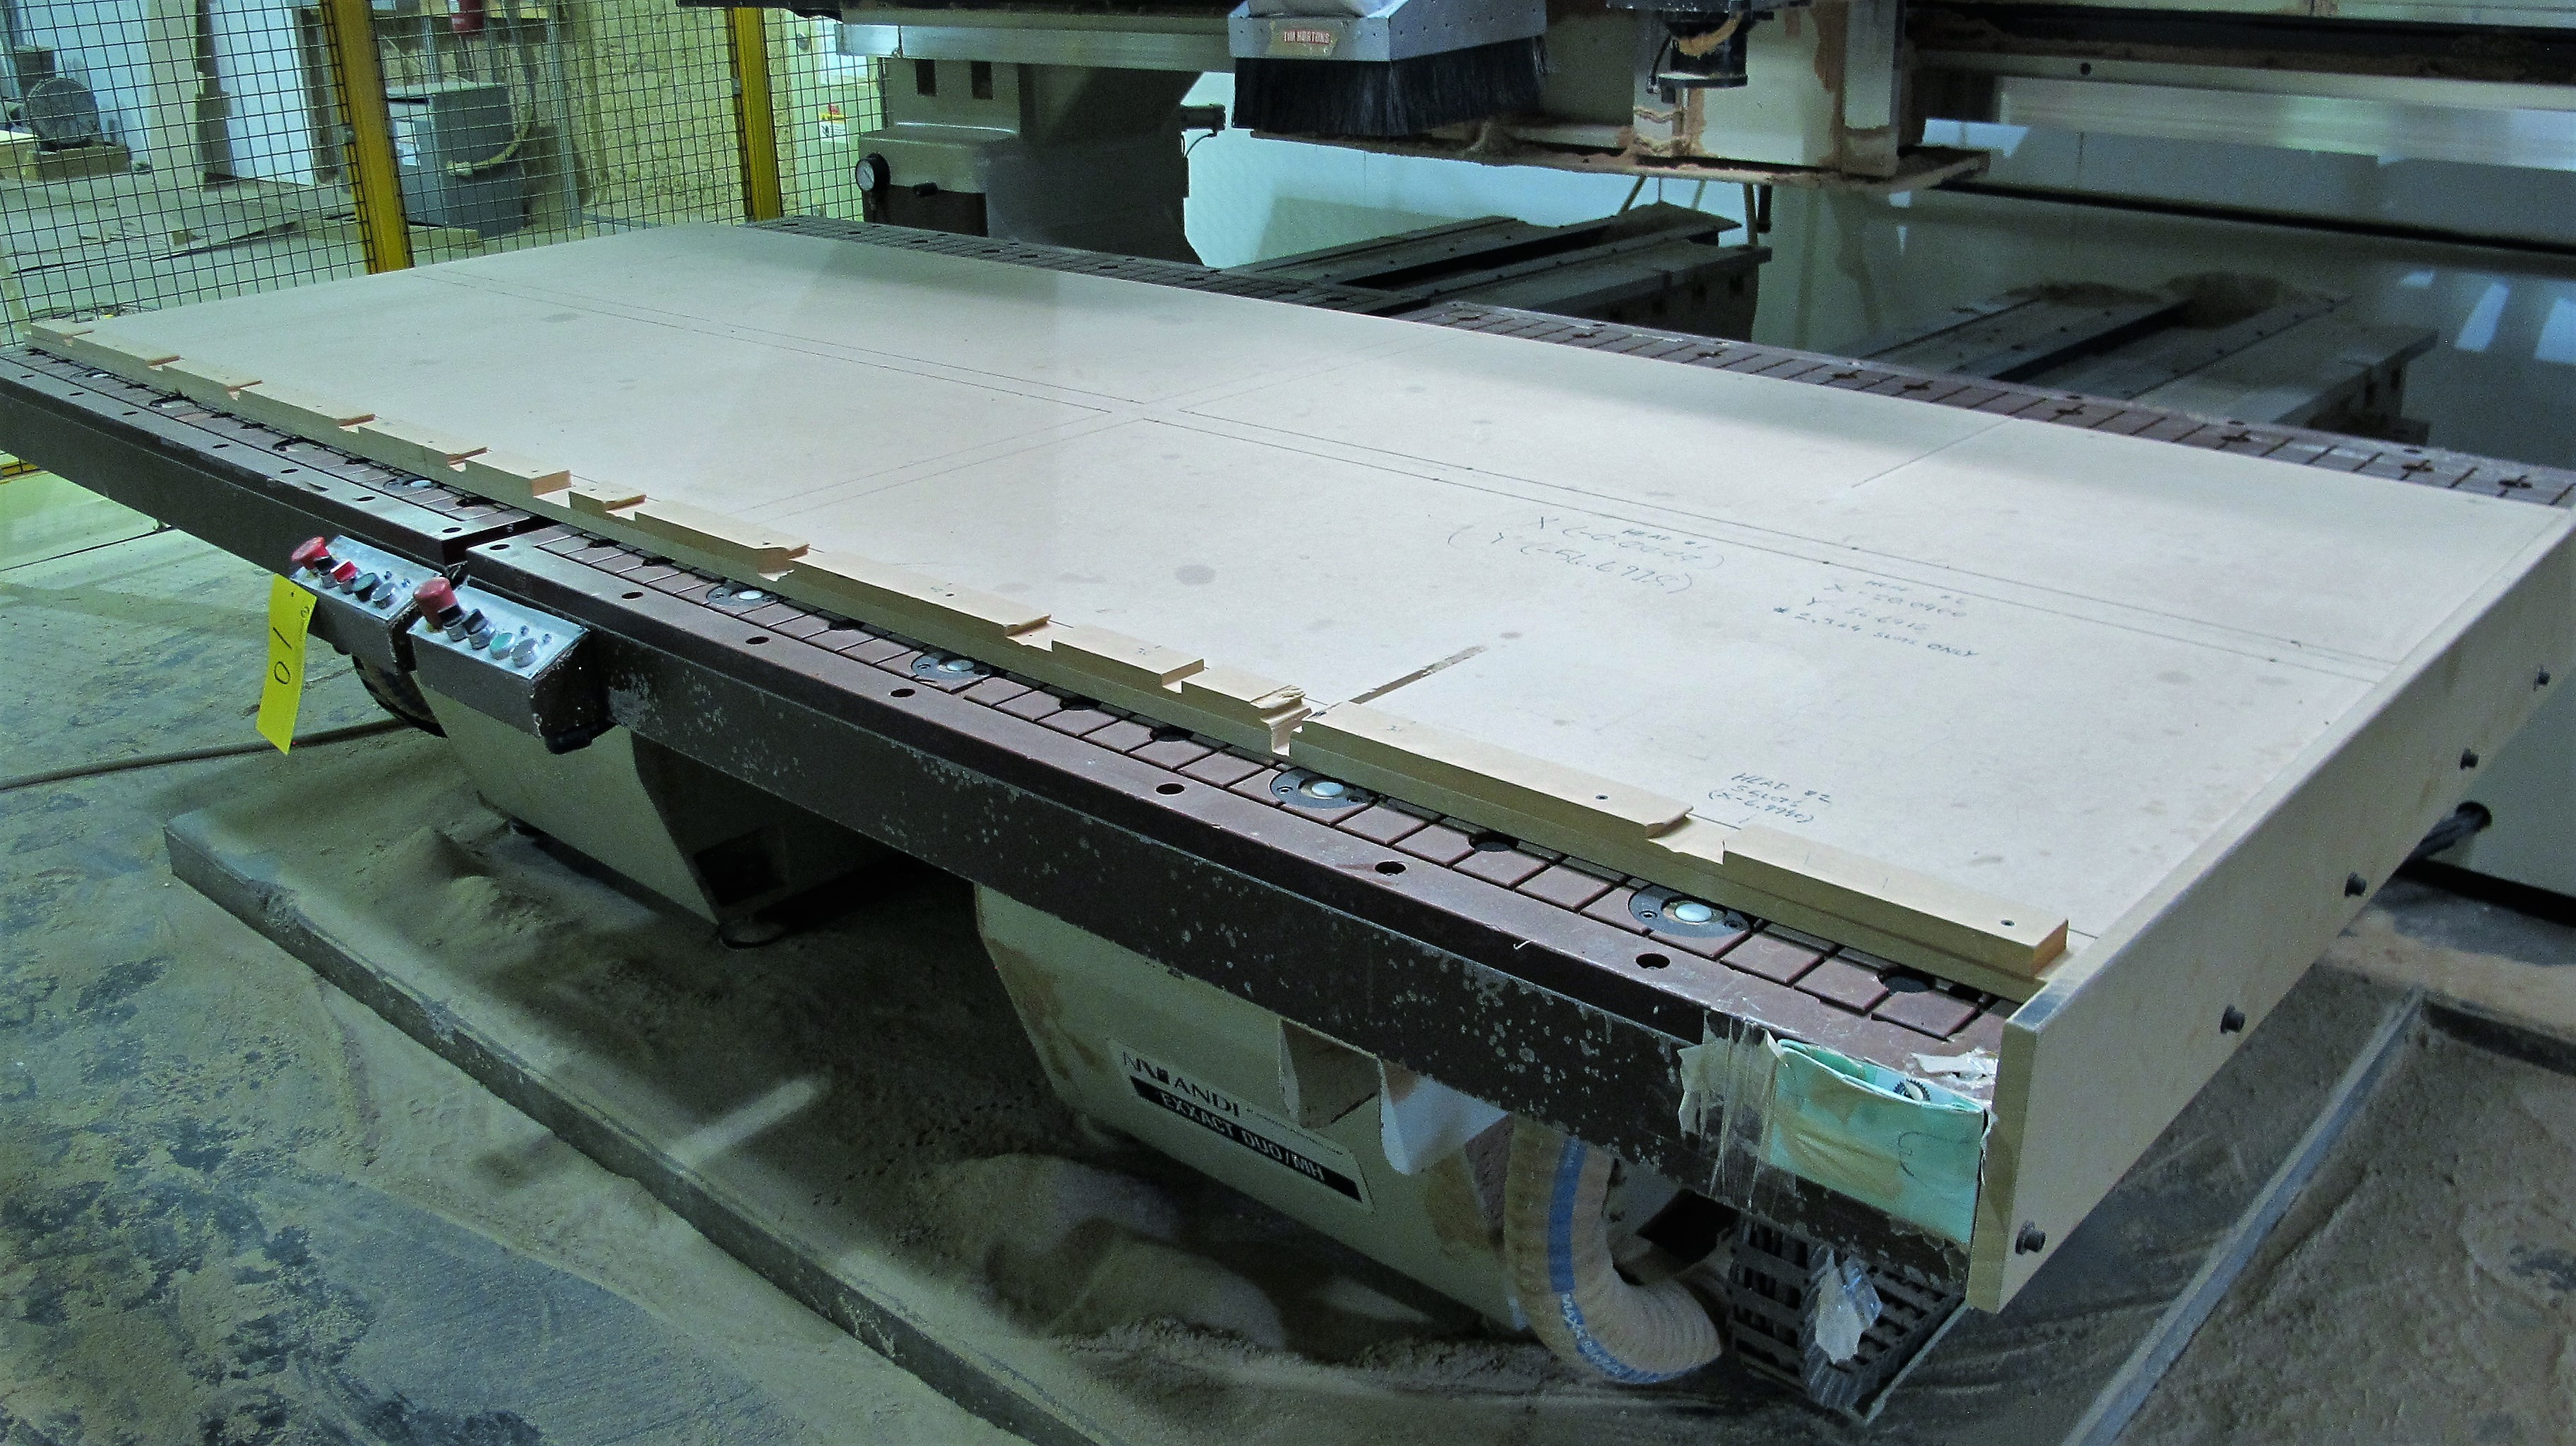 """Lot 10 - ANDERSON EXXACT DUO/MH CNC ROUTER, S/N 01-8820, 63"""" X 128"""" TABLE, FANUC SERIES 18M CONTROL, (2) HEAD"""